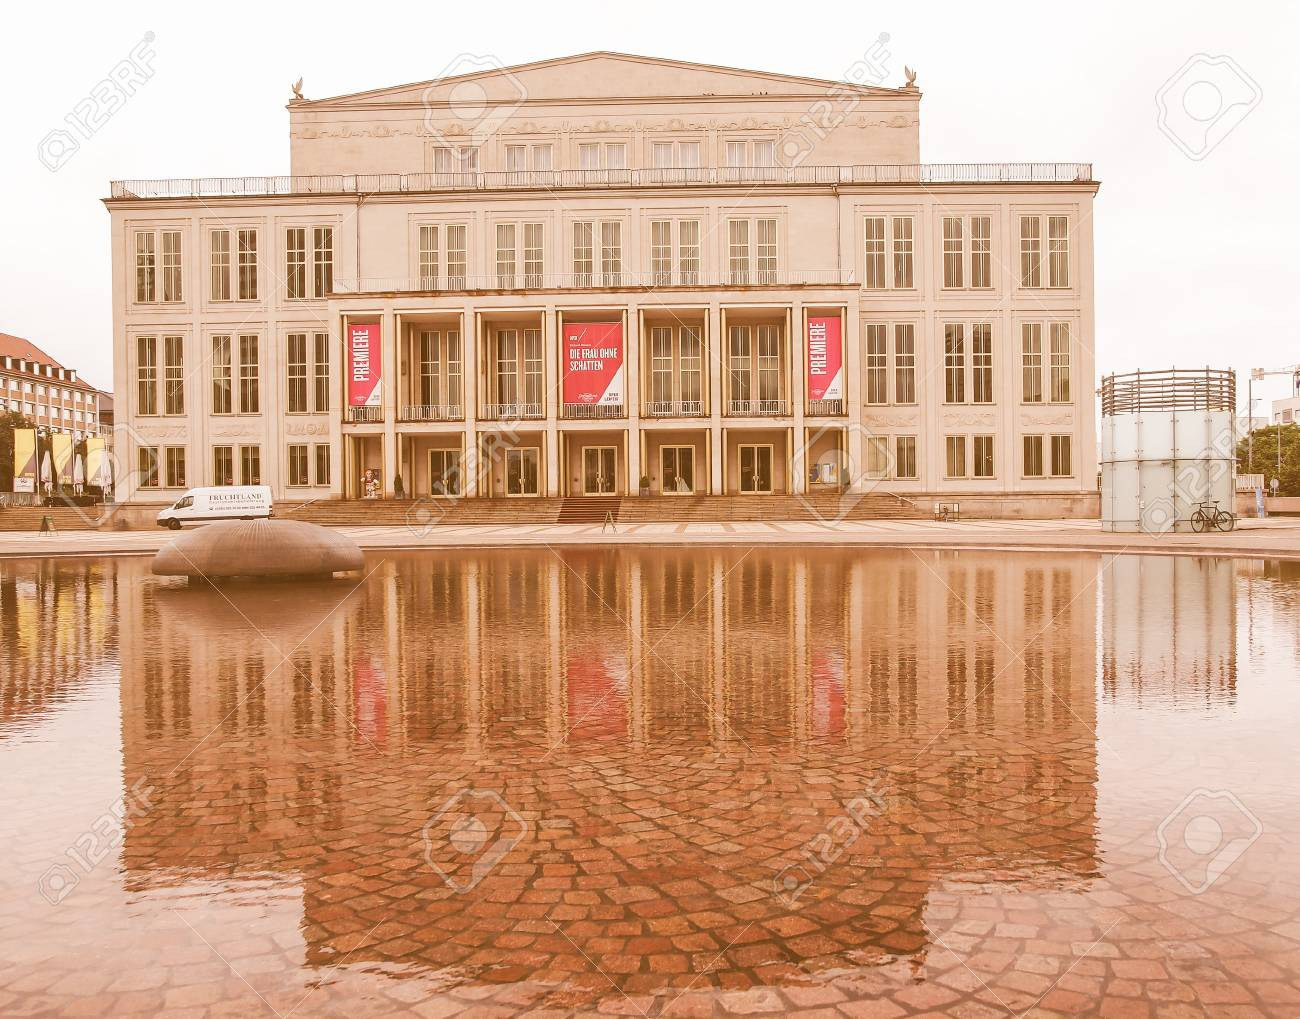 Leipzig Germany June 14 2014 The New Opera House Built In Stock Photo Picture And Royalty Free Image Image 54389779